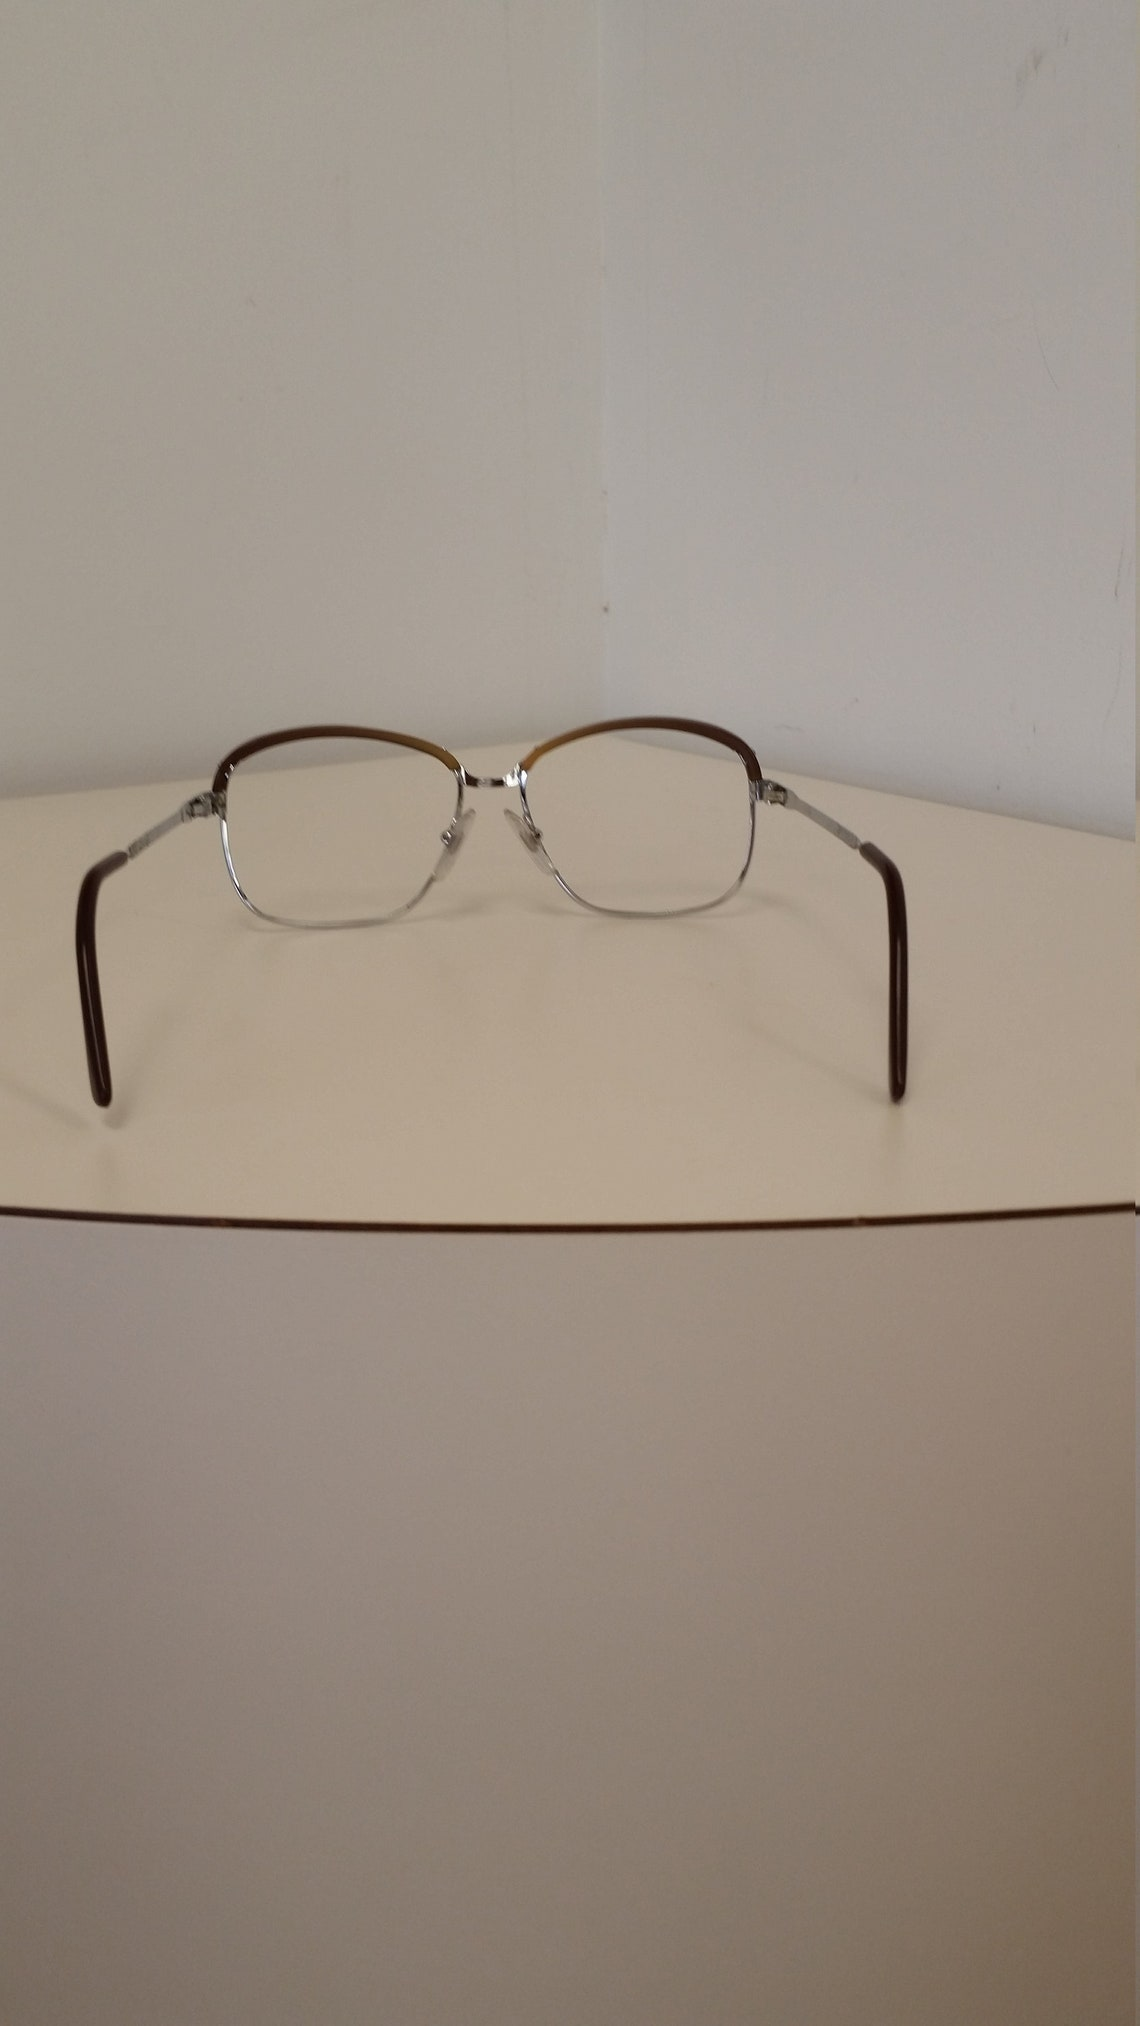 1960s L'Amy Eyeglasses Frame; Silver Metal w/Brown Plastic Brows; Rx-able; Very Nice Vintage Condition; Read Description for Sizing